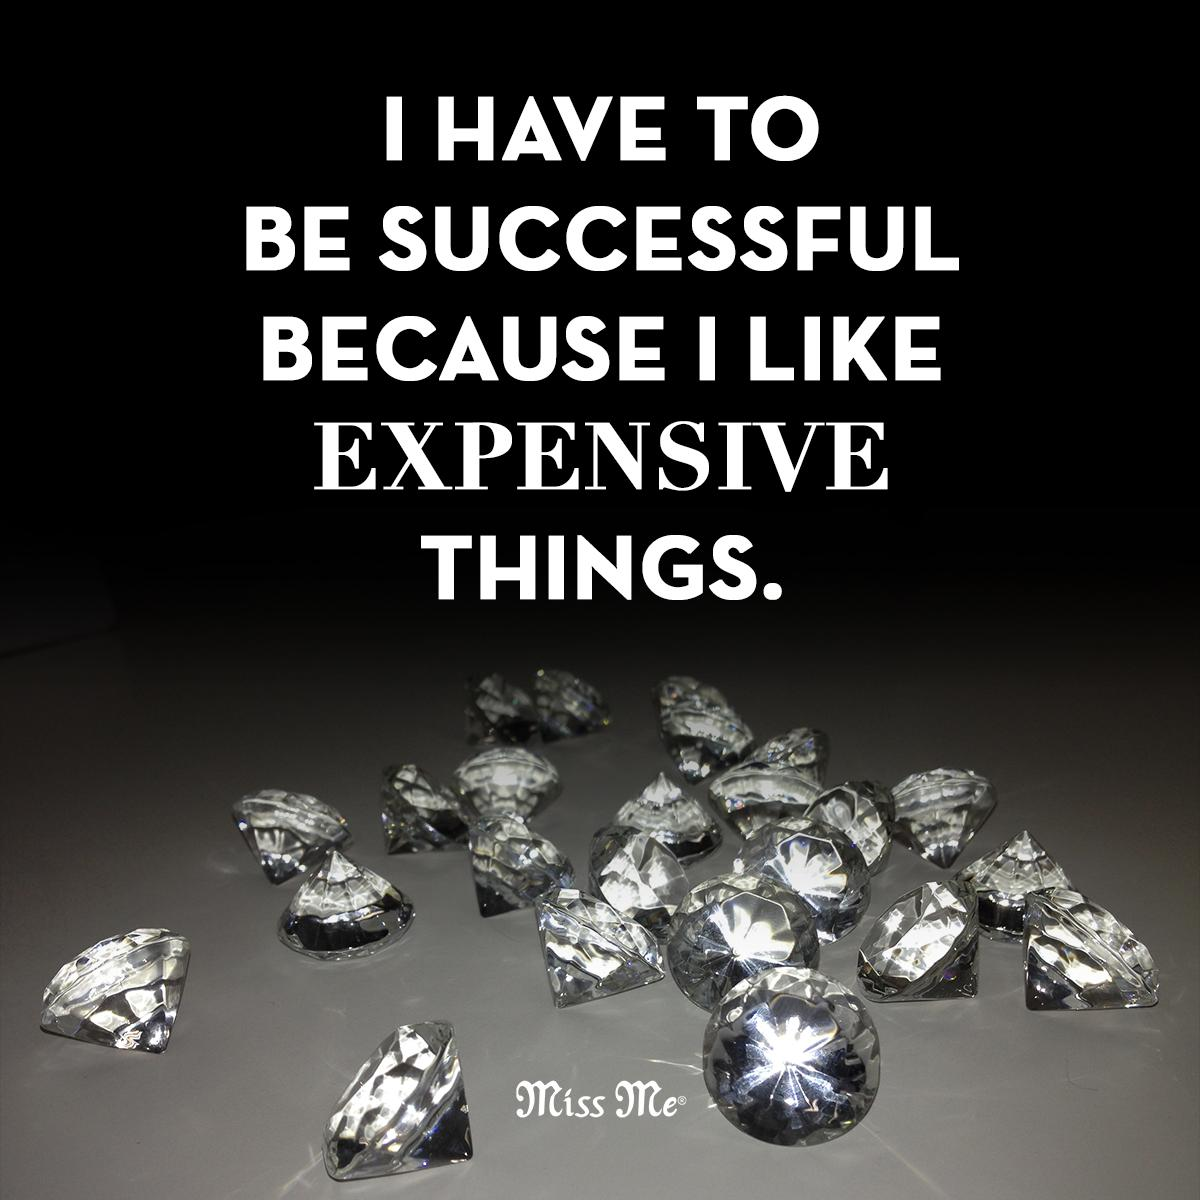 Keep on working to #KeepOnShining. http://t.co/QWlsb3apkB